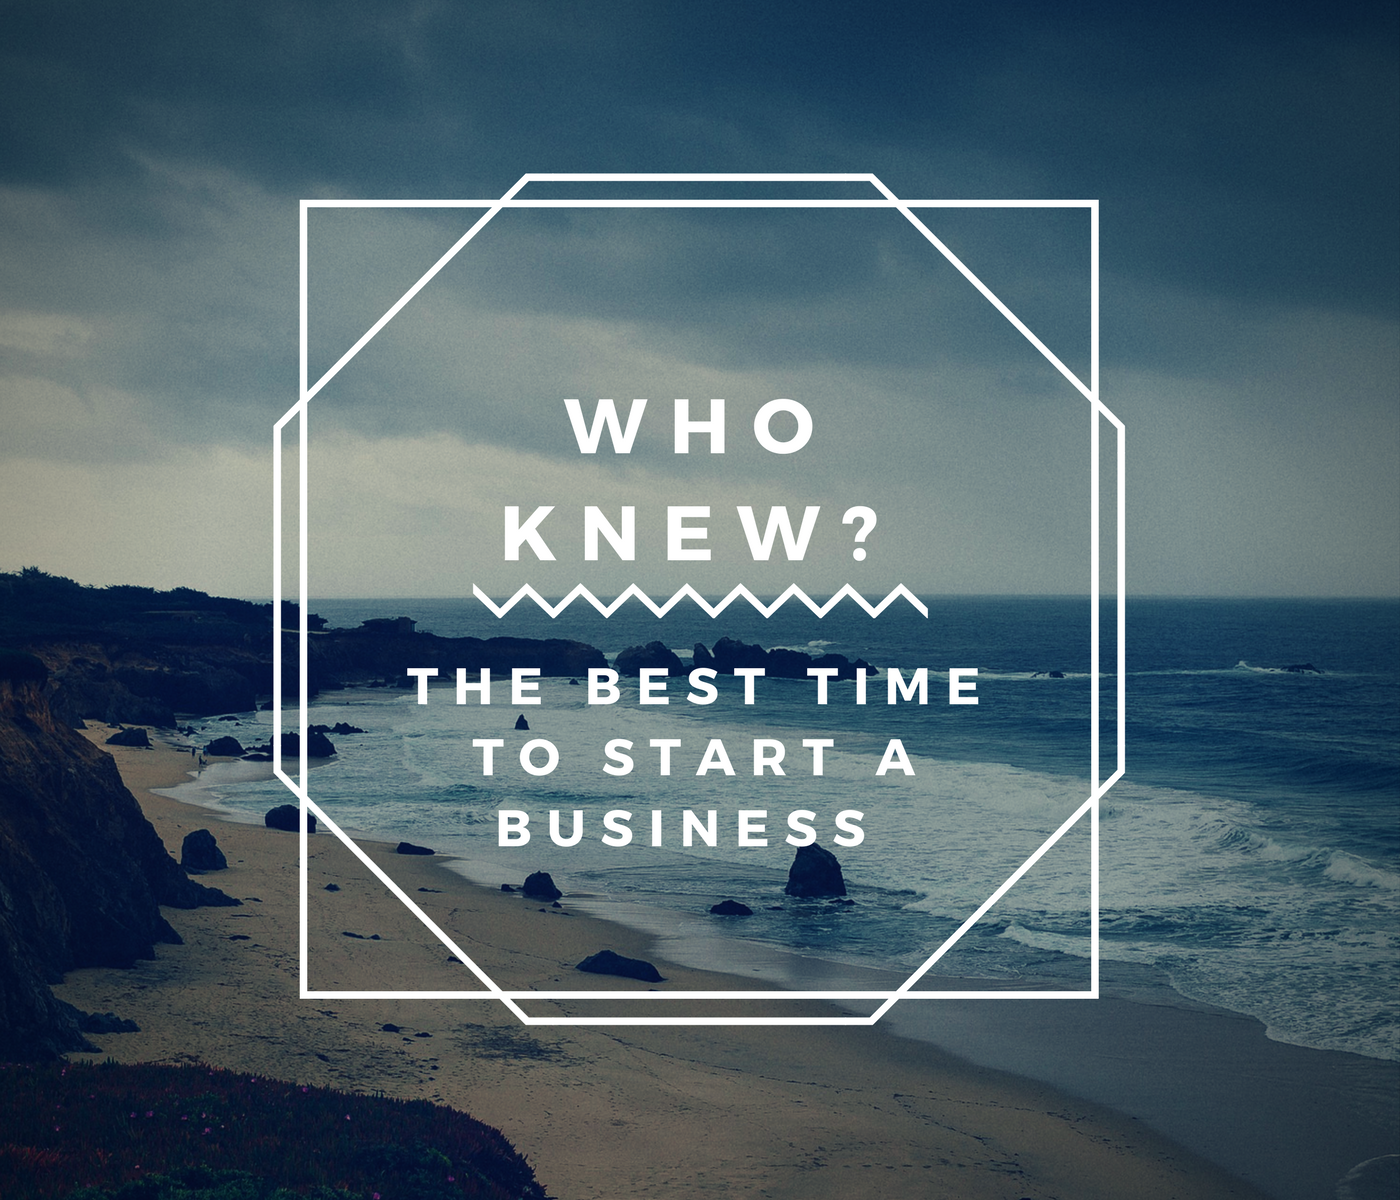 The Best time to Start a Business – Who Knew?